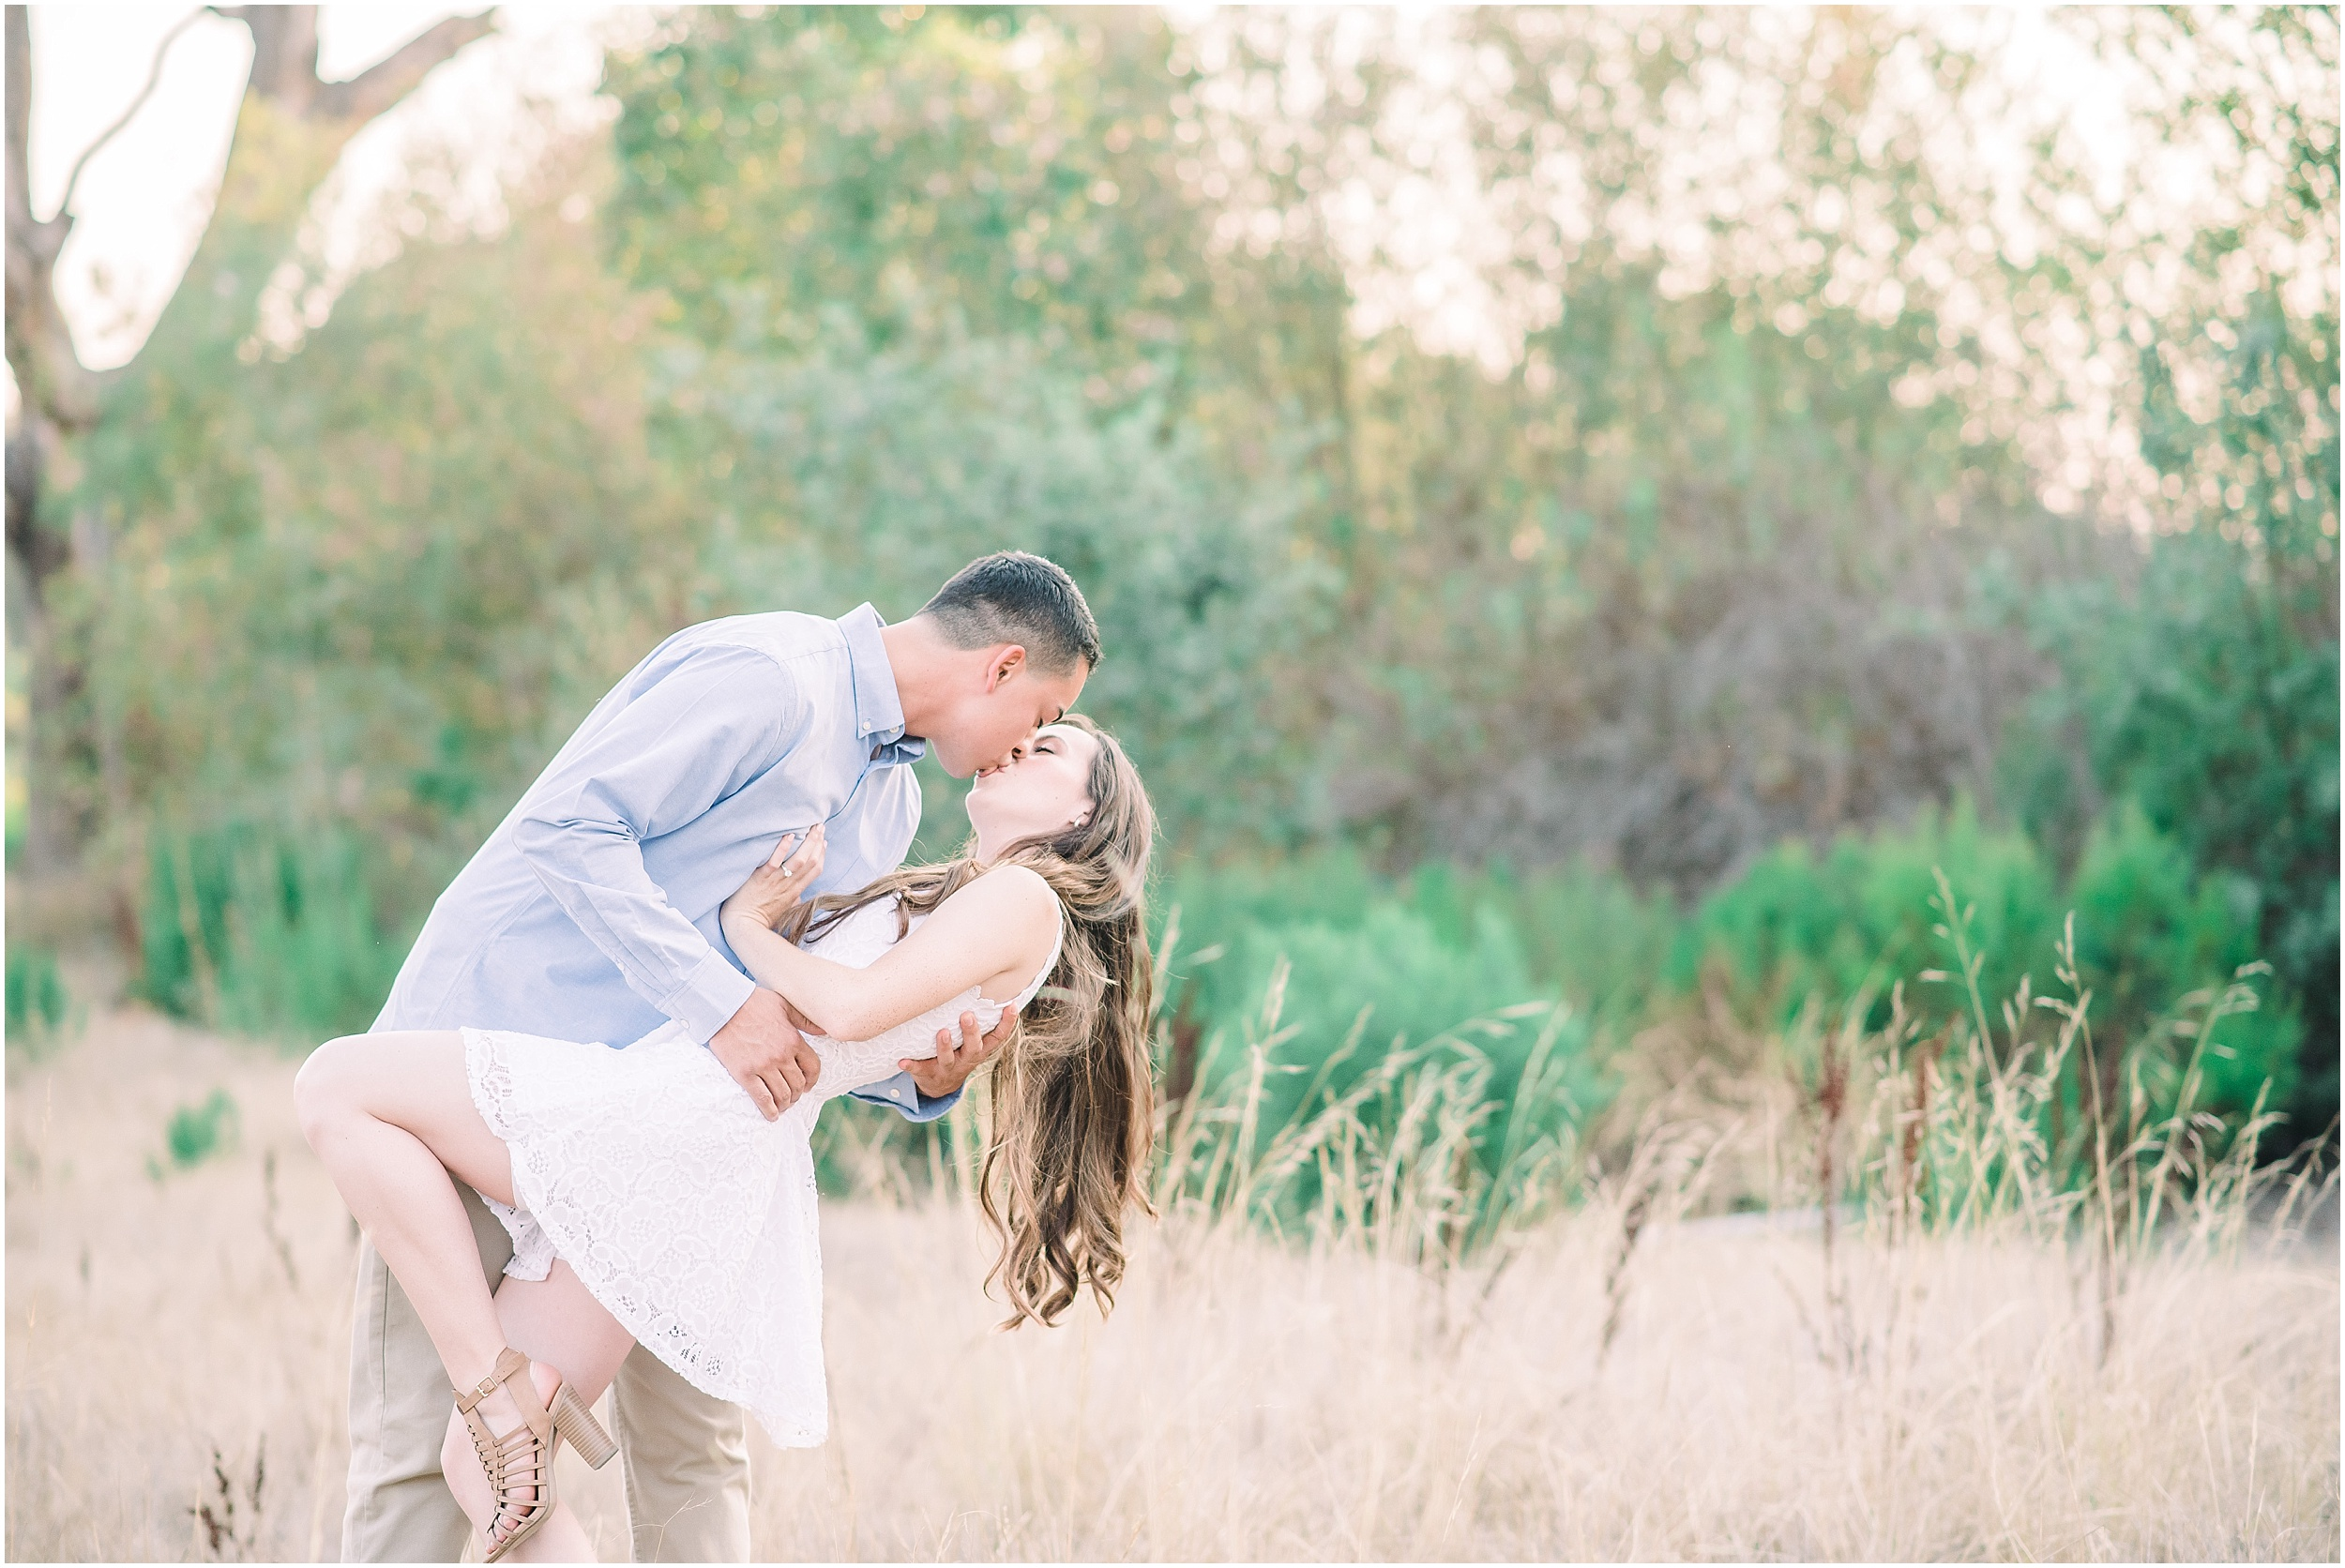 Valeria-Gonzalez-Photography-Wedding-and-Portrait-Photographer-Richmond-Virginia-Engagement-Session-in-Ojai-California_0021.jpg